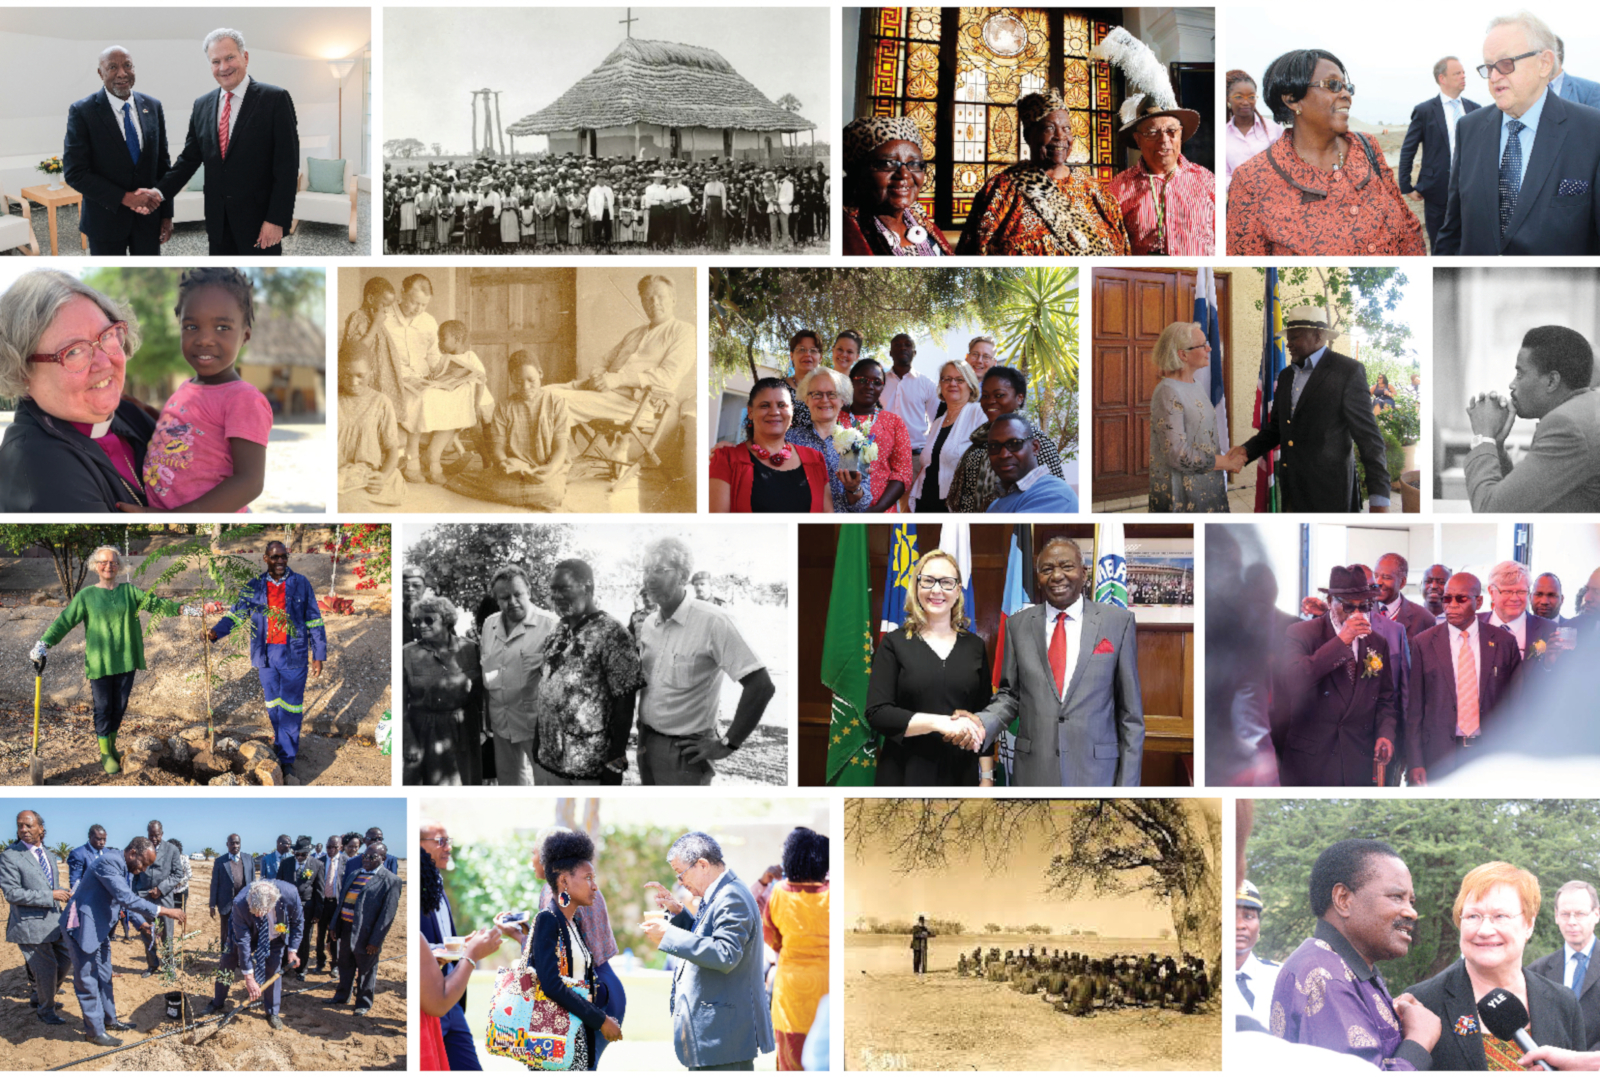 Photo collage depicting the 150 years of friendship between Finland and Namibia.